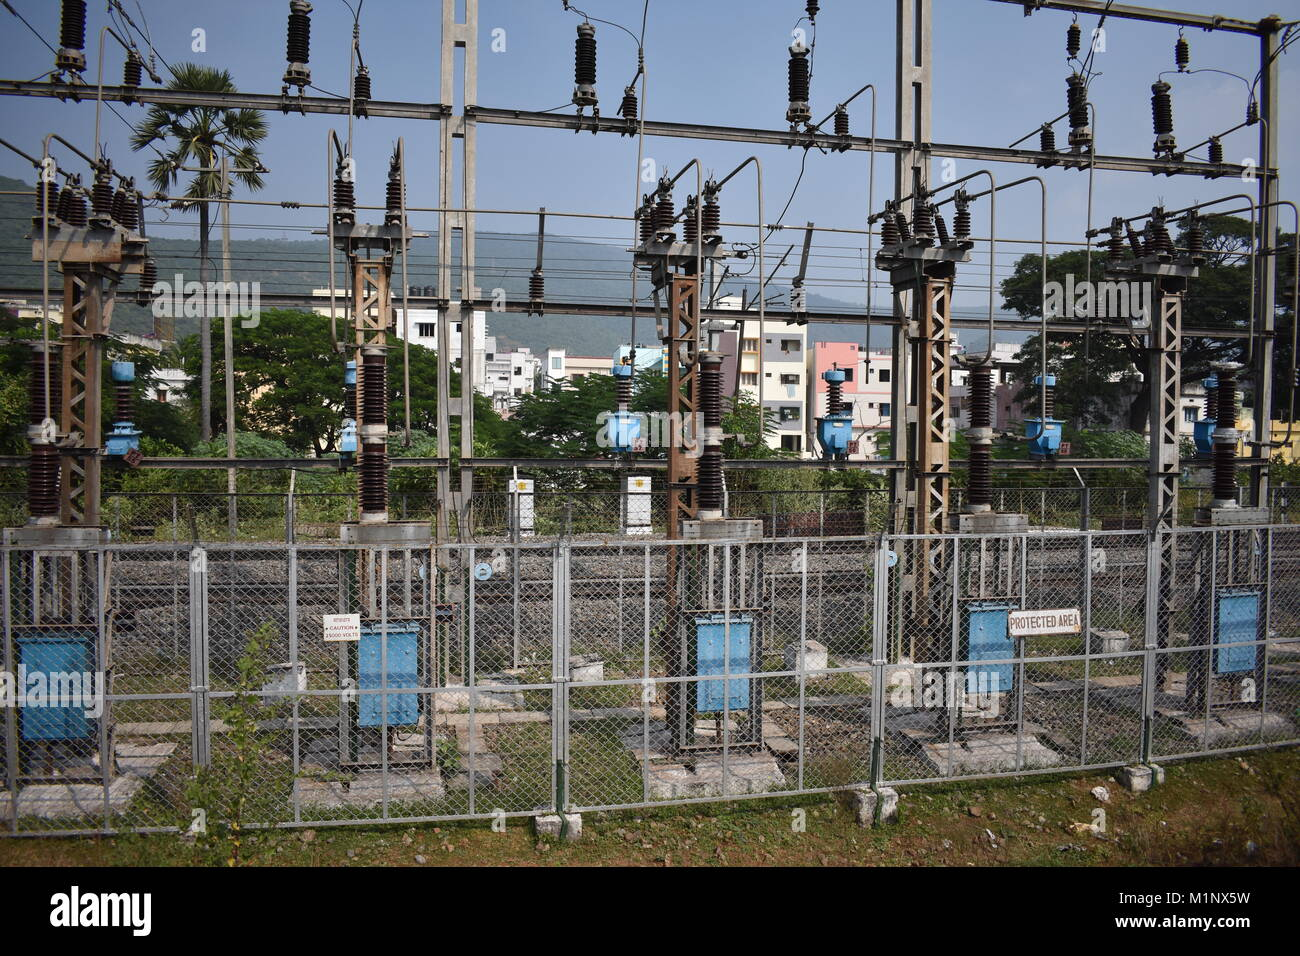 Transformer Circuit Stock Photos Images Overhead Wiring Diagram A Yard Close View With Background City Building Image